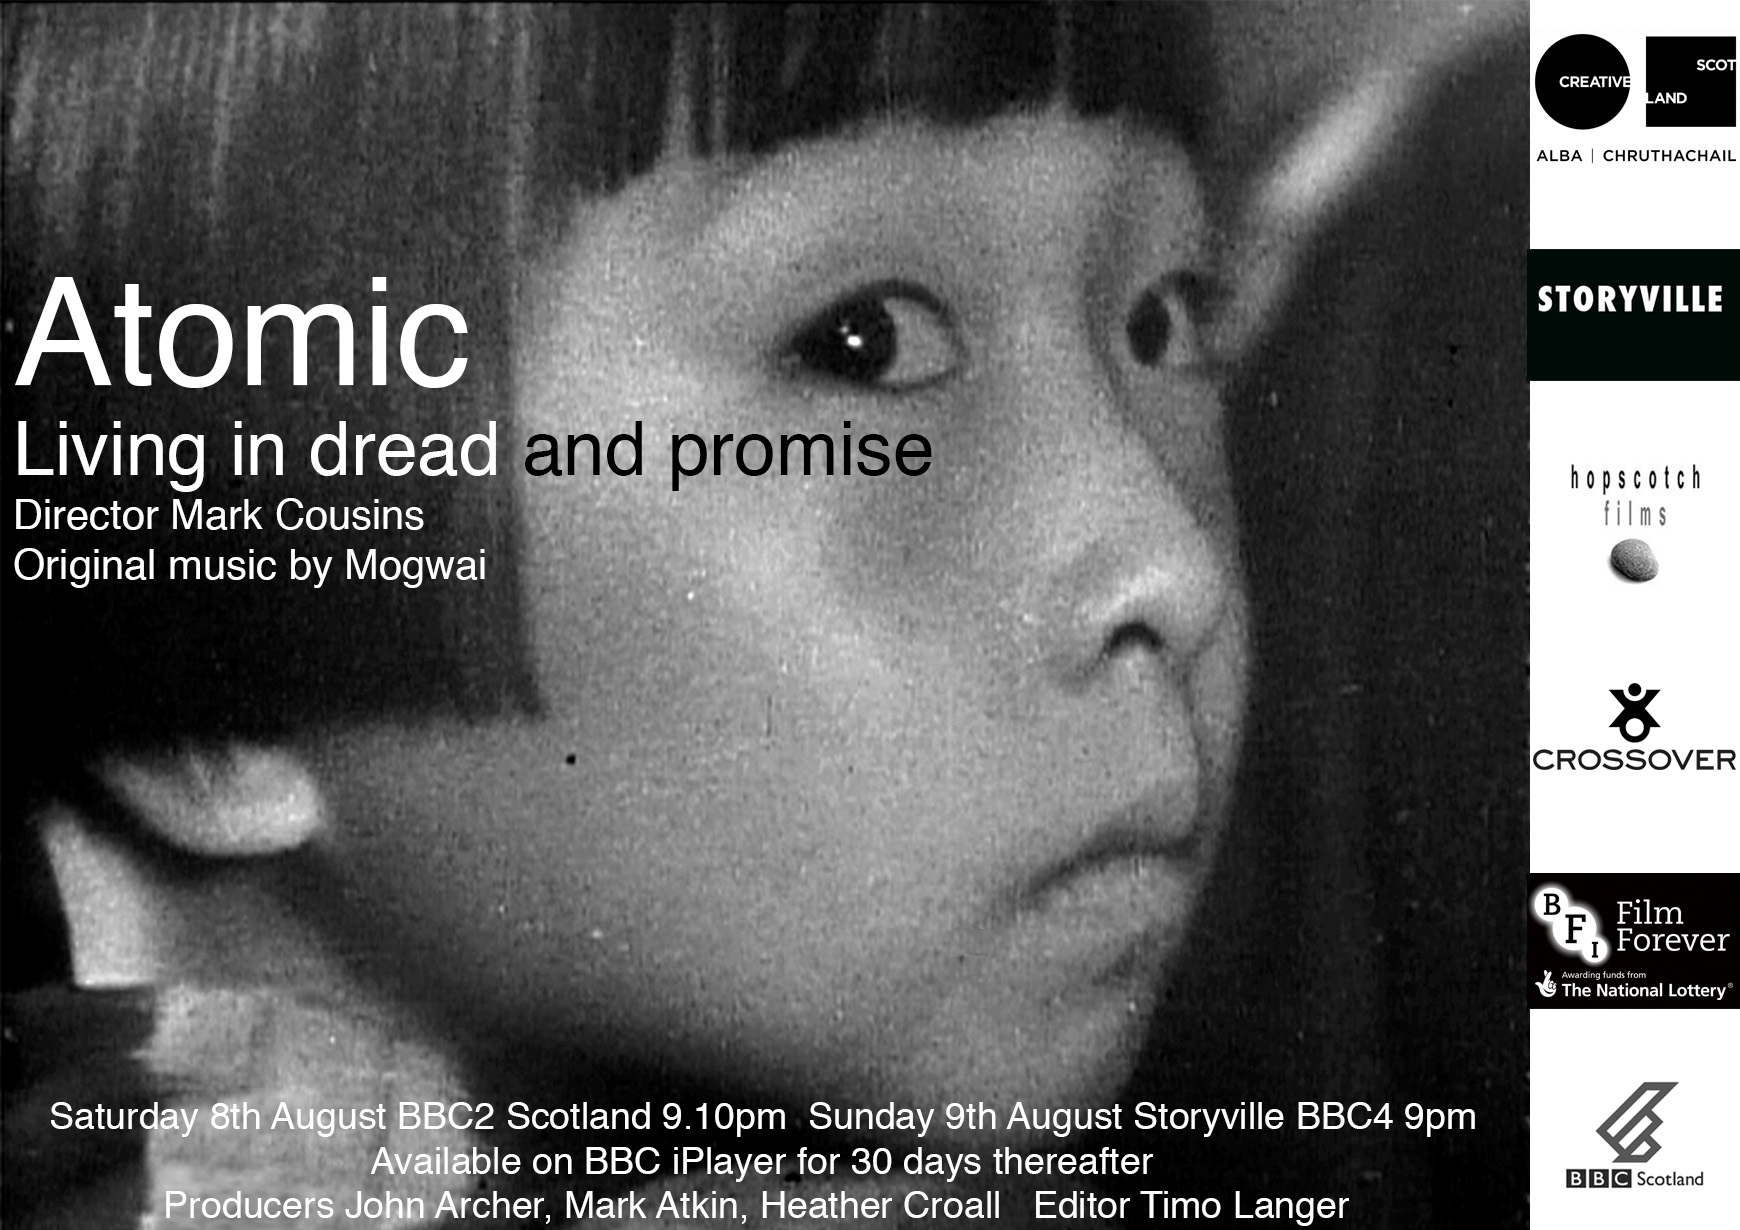 70 years ago this month the bombing of Hiroshima showed the appalling destructive power of the atomic bomb.  Mark Cousins' bold new documentary looks at death in the atomic age, but life too.  Using only archive film and a new musical score by the band Mogwai,  Atomic shows us an impressionistic kaleidoscope of our nuclear times: protest marches, Cold War sabre rattling, Chernobyl and Fukishima, but also the sublime beauty of the atomic world, and how X Rays and MRI scans have improved human lives.  The nuclear age has been a nightmare, but dreamlike too.    Watch the film: BBC2 Scotland 8th August 21:10 and BBC4 Storyville 9th August 21:00